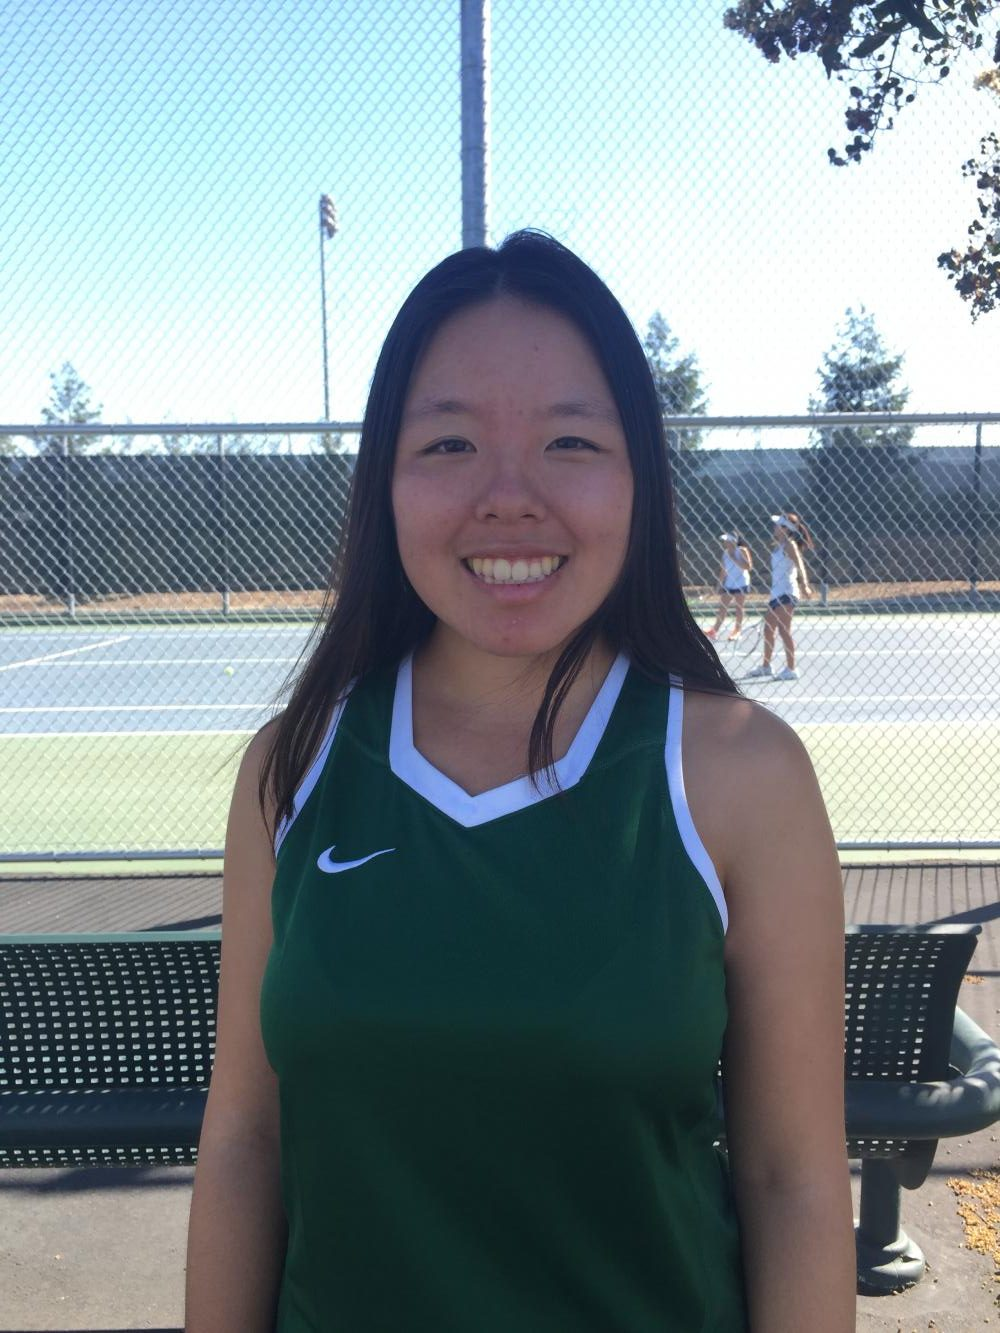 Mary+Wang%2C+varsity+tennis+co-captain+whose+goal+for+this+year+is+to+see+her+team+succeed+this+season.+She+communicates+that+many+girls+on+the+team+practice+after+the+daily+two+hour+practice+and+on+weekends+as+well.+Wang+says+that+tennis+has+been+present+in+her+life+ever+since+she+was+eight+years+old.+%0AWang+says+that+a+common+misconception+about+tennis+is+that+it+is+often+not+recognized+as+a+sport+or+that+it+is+really+easy+to+play.+Wang+disagrees+with+this+sentiment%2C+saying+that+%E2%80%9Ctennis+is+a+really+challenging+sport+and+whether+you+play+singles+or+doubles+each+person+needs+to+have+a+certain+mental+mindset+that+is+very+difficult+to+achieve.%E2%80%9D%0AShe+hopes+that+tennis+will+remain+in+her+life%2C+possibly+as+an+intramural+sport+in+high+school.%0A